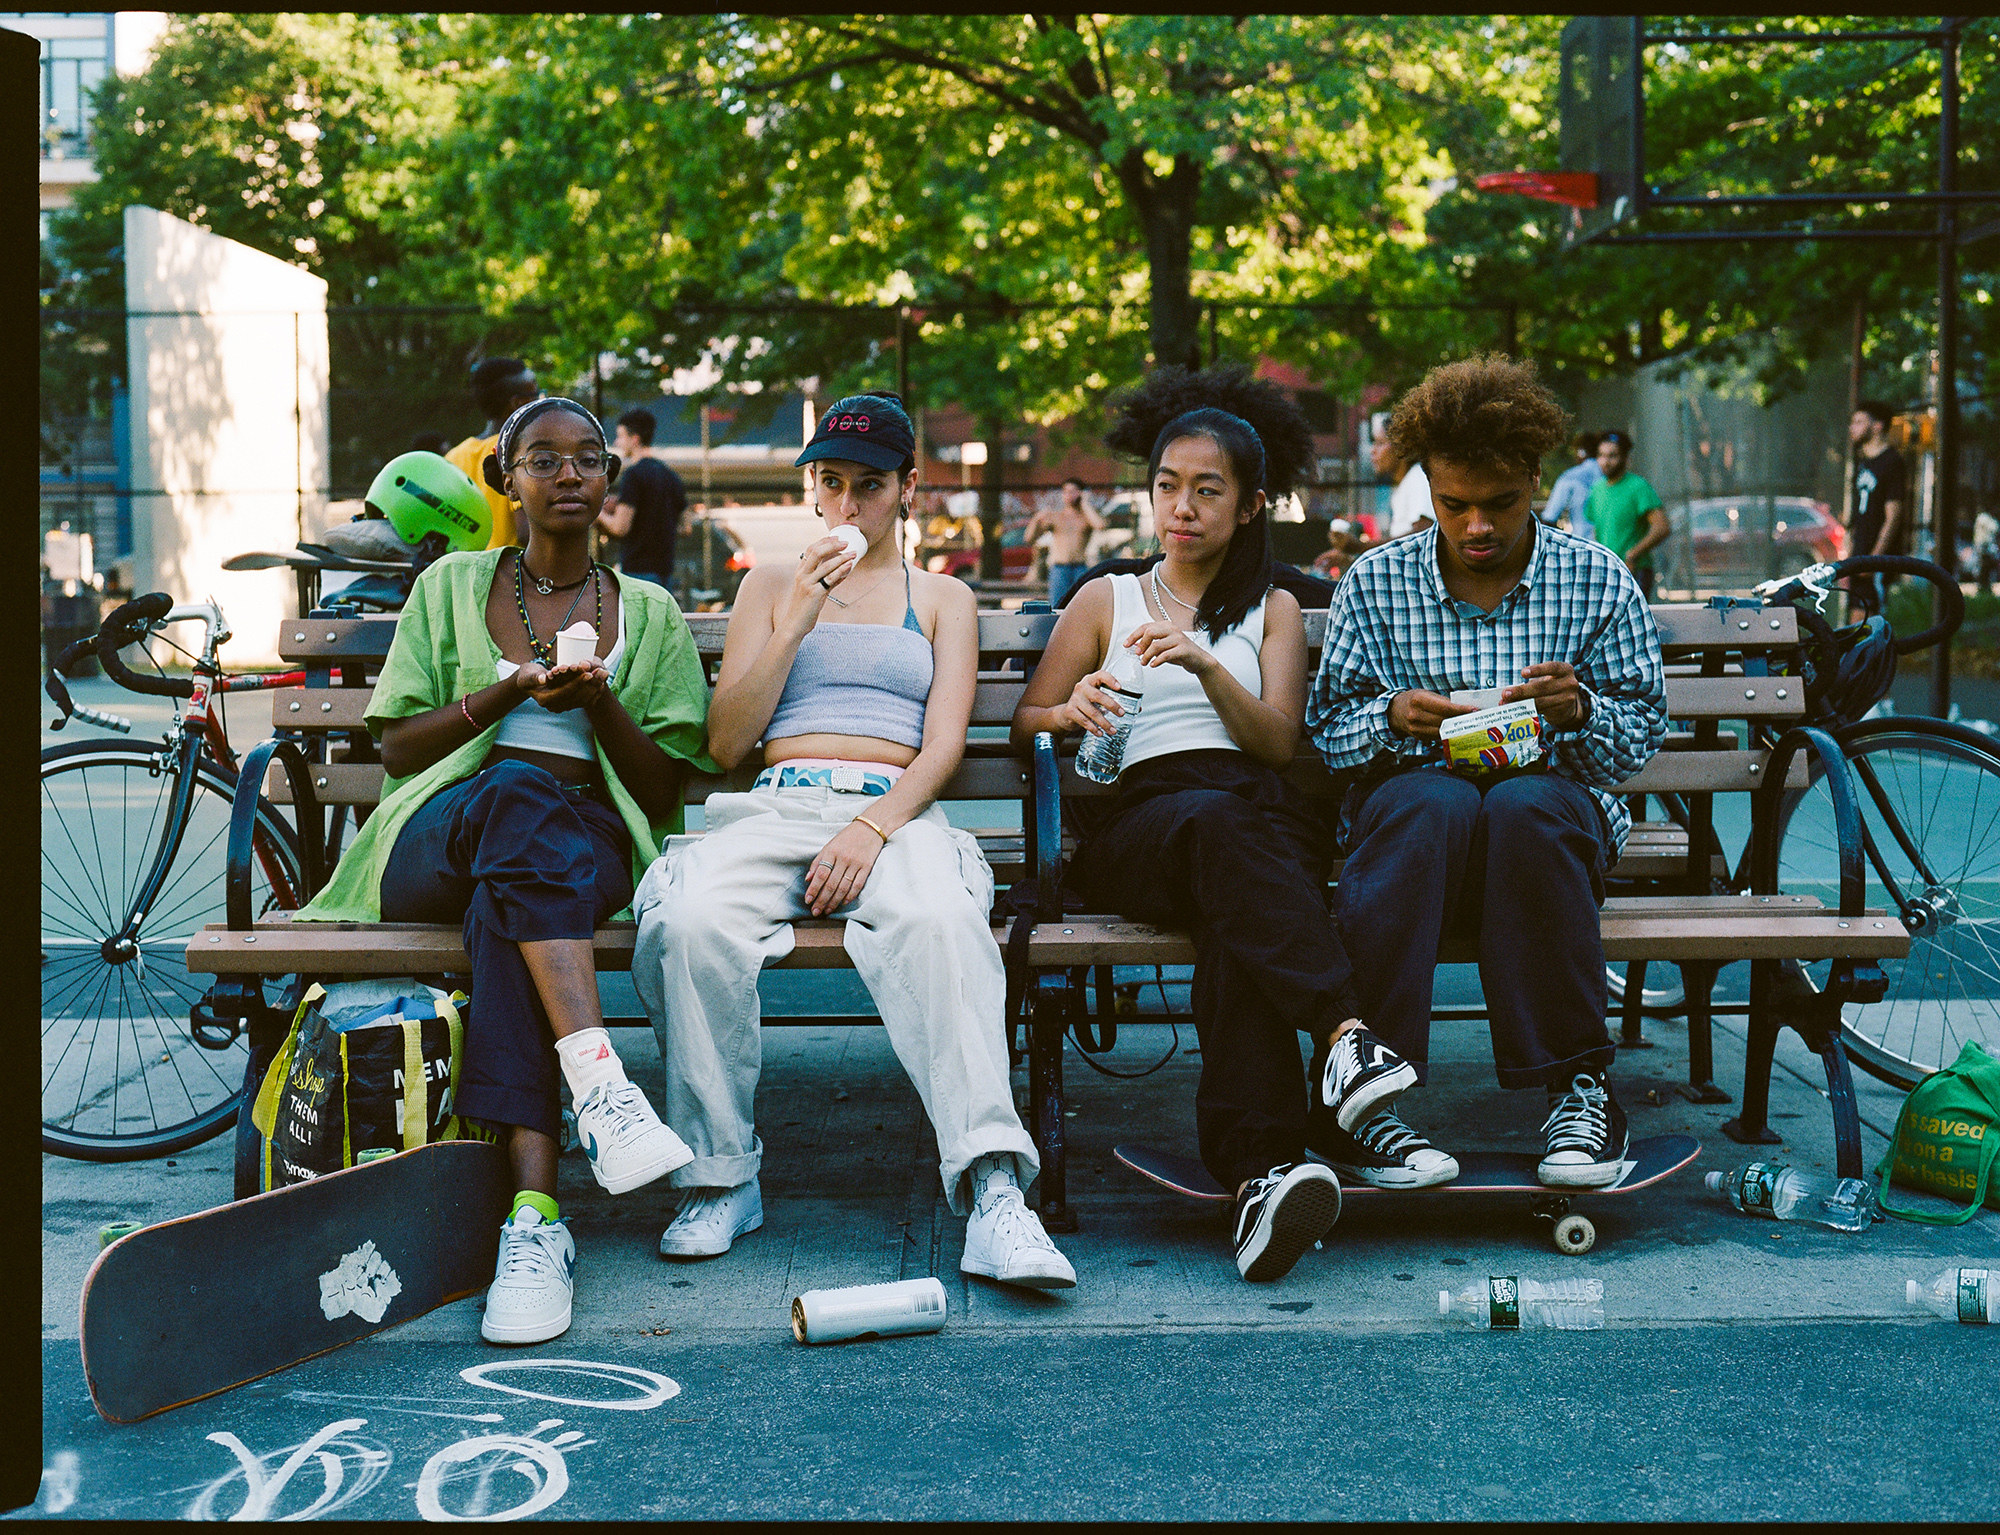 A group of women sitting on a park bench eat a snack with skateboards at their feet